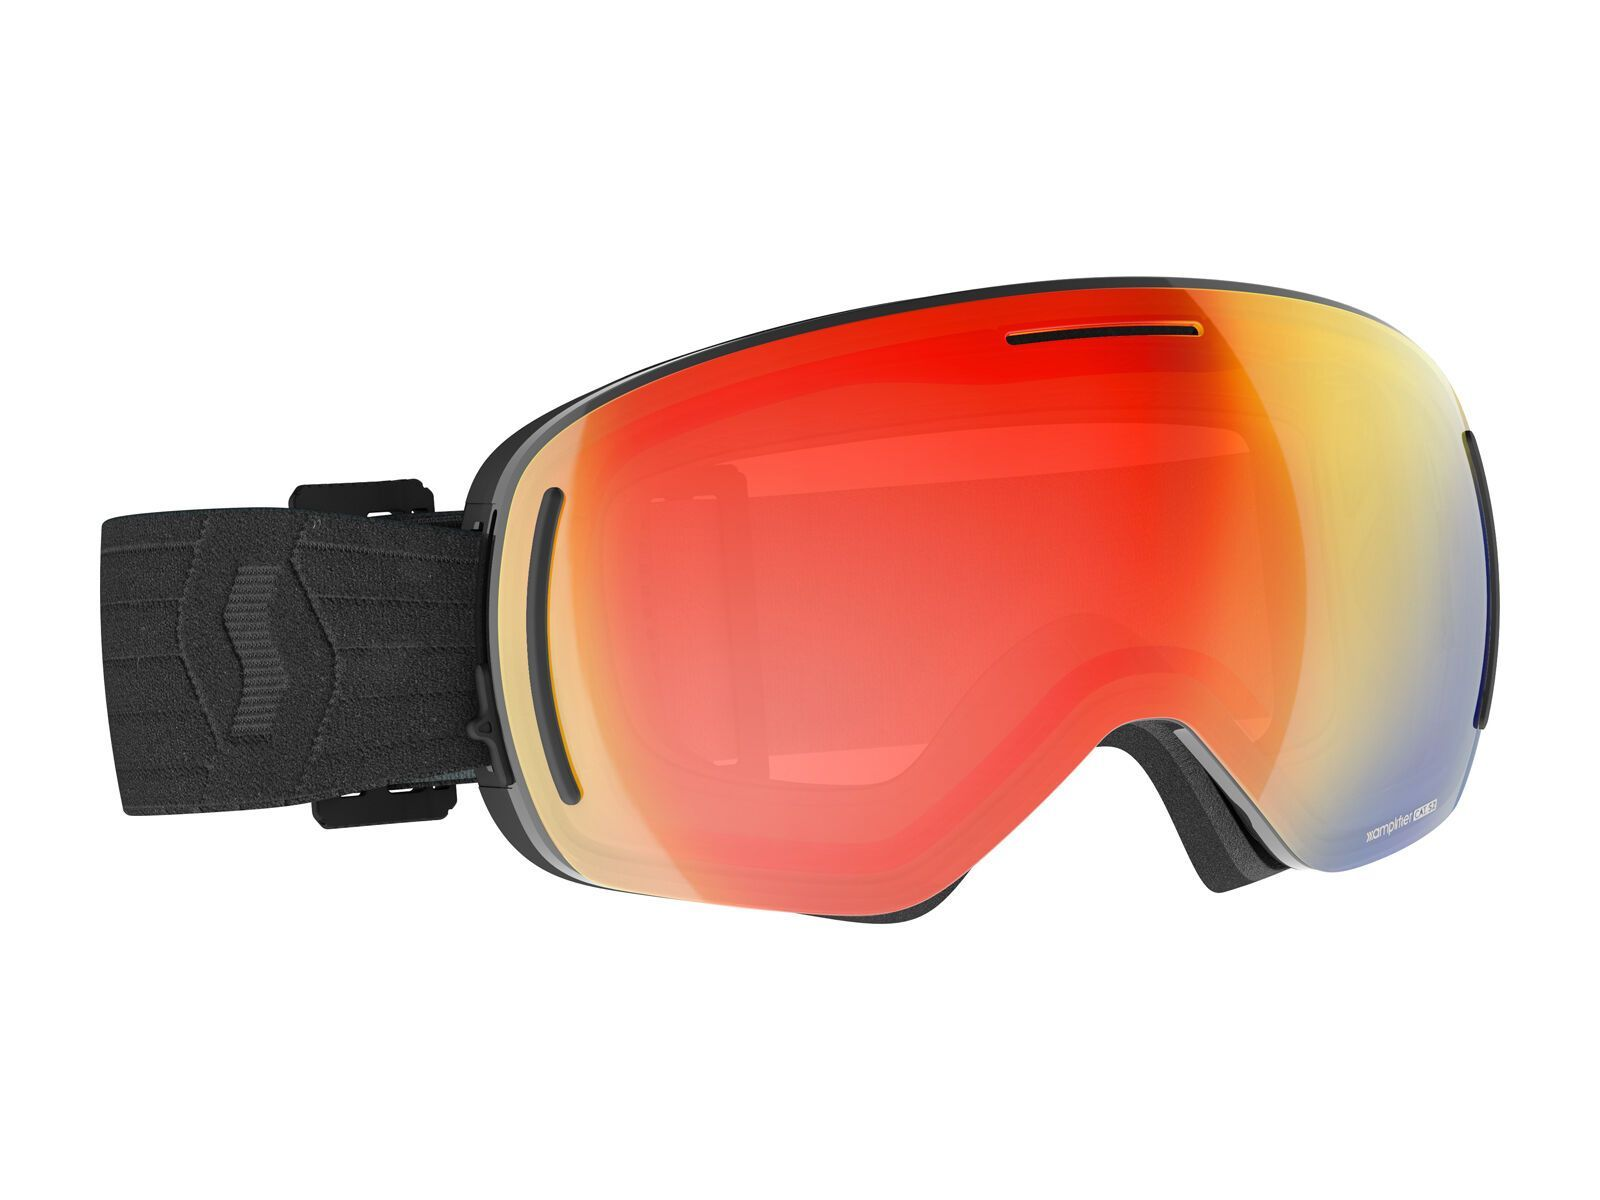 Scott LCG Evo Goggle inkl. WS, black/Lens: enh red chrome - Skibrille 2778300001312